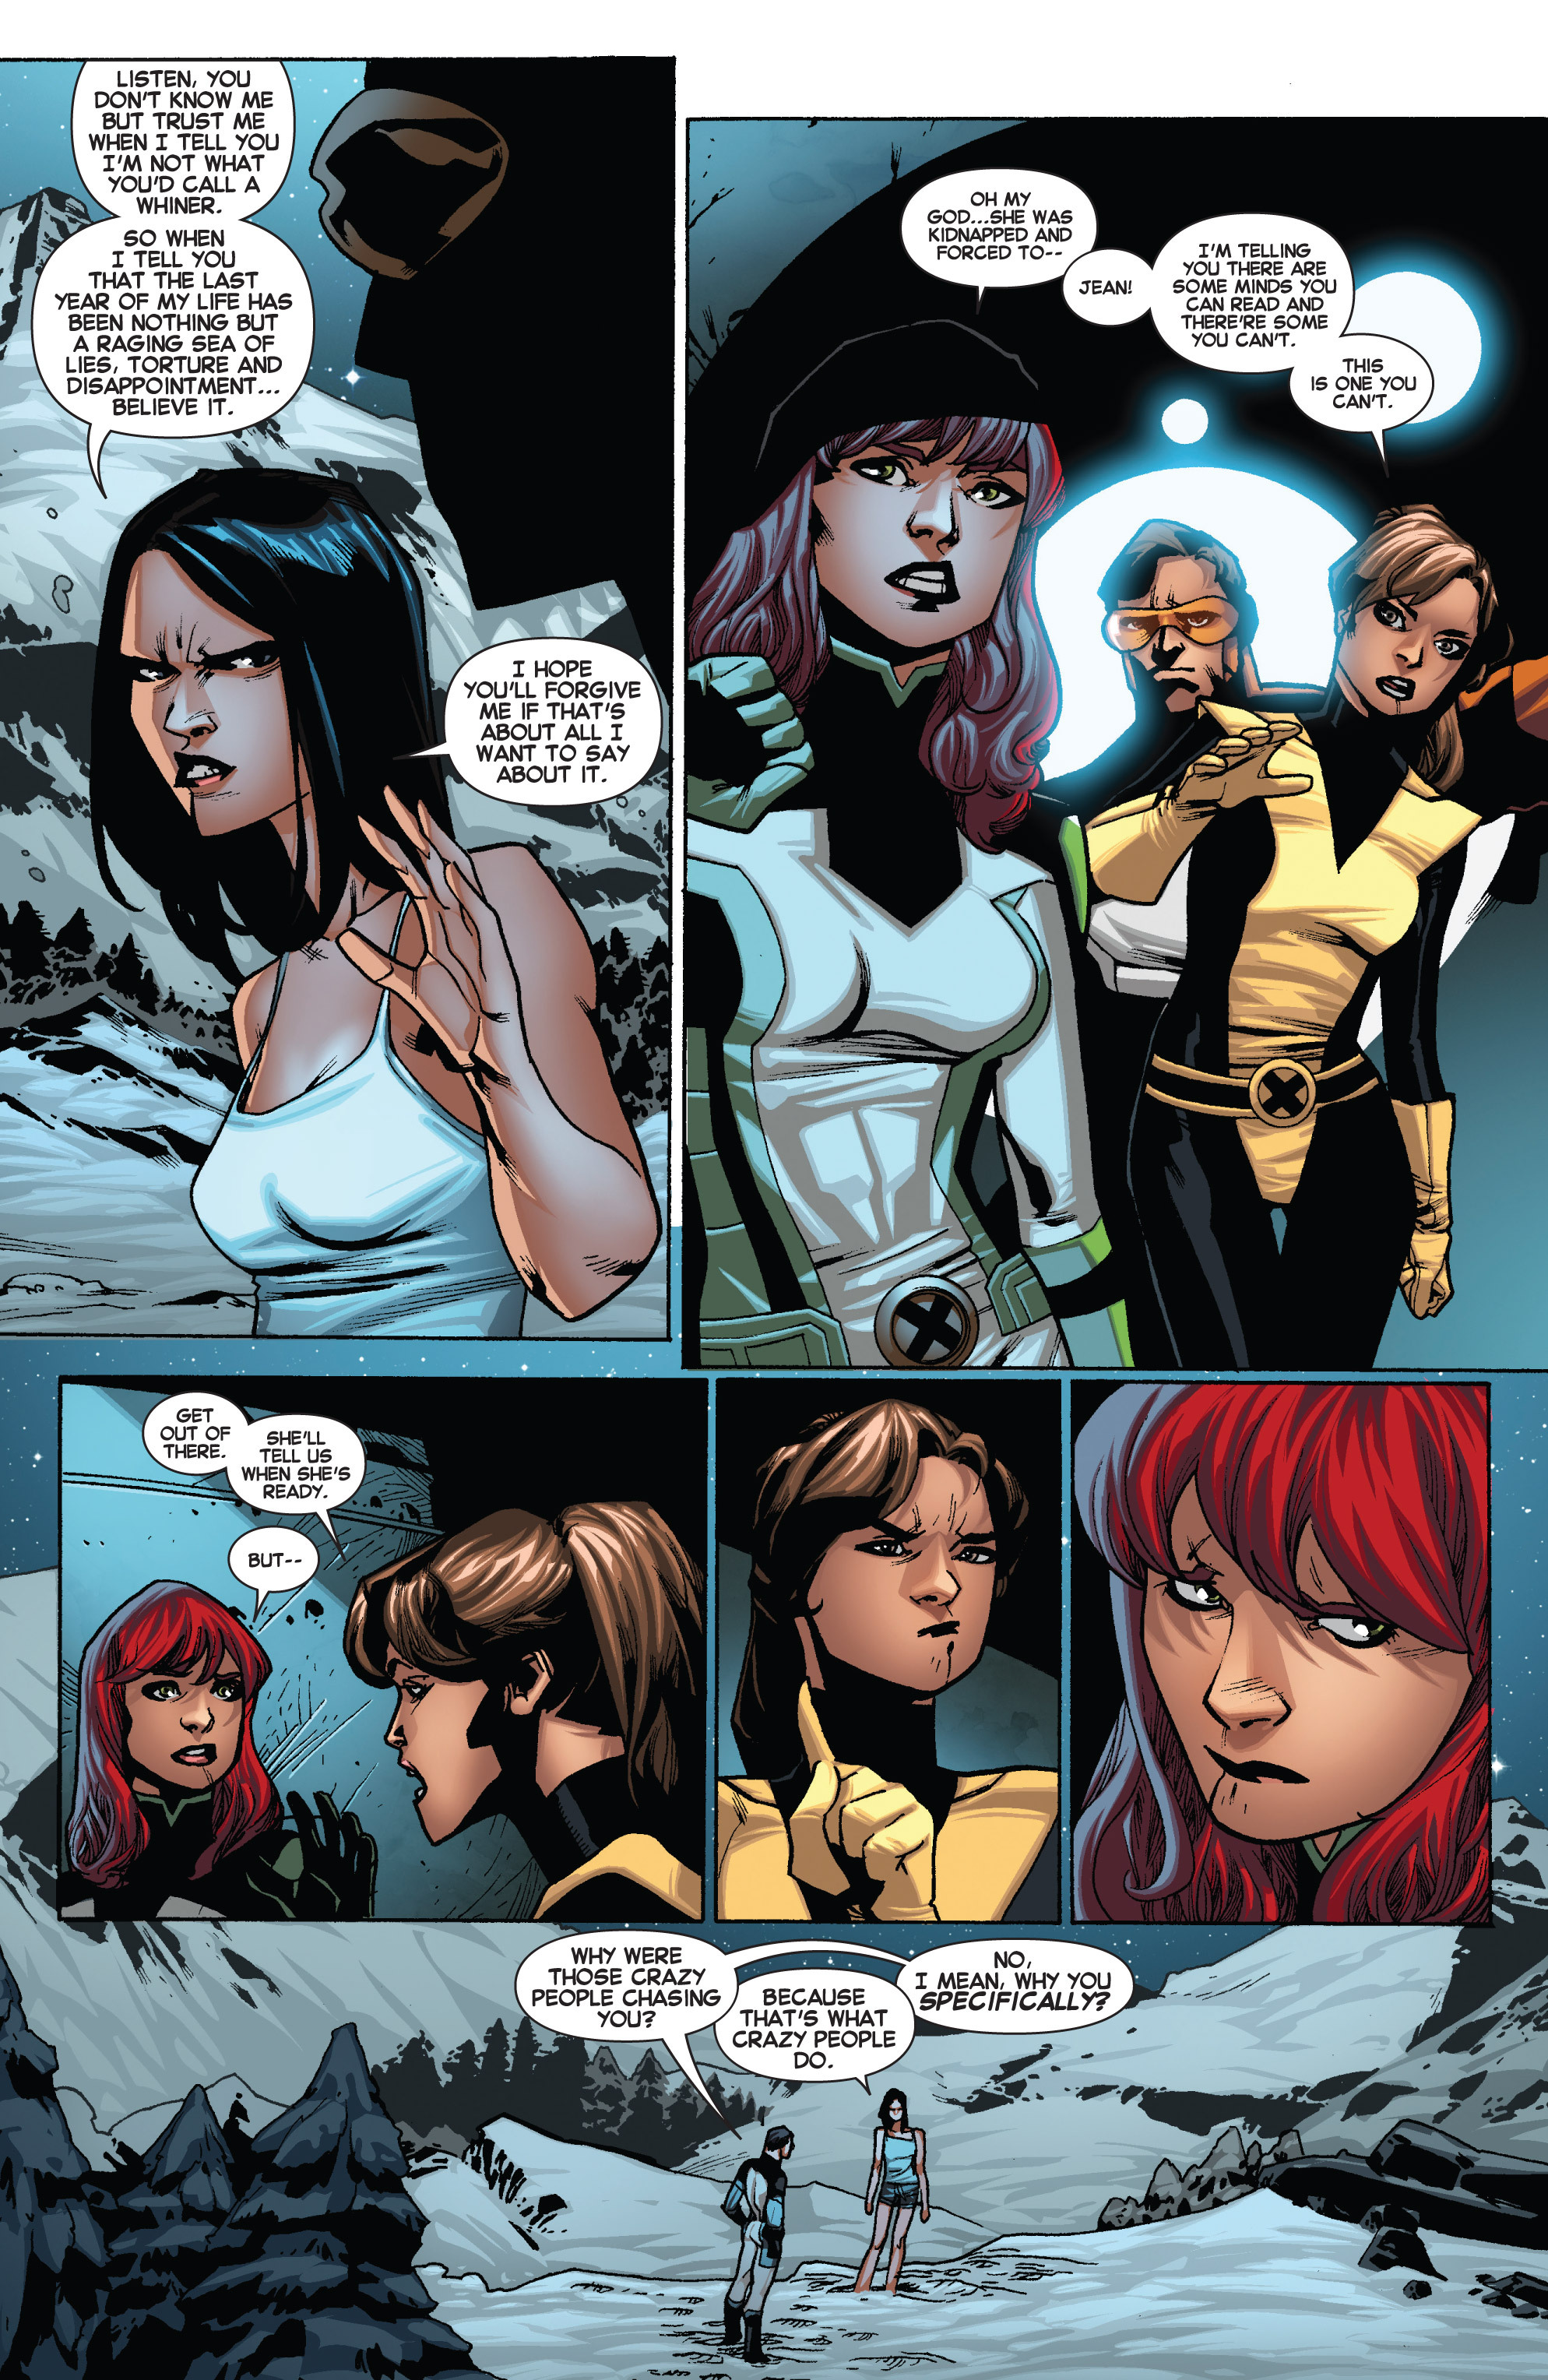 Read online All-New X-Men (2013) comic -  Issue # _Special - All-Different - 49